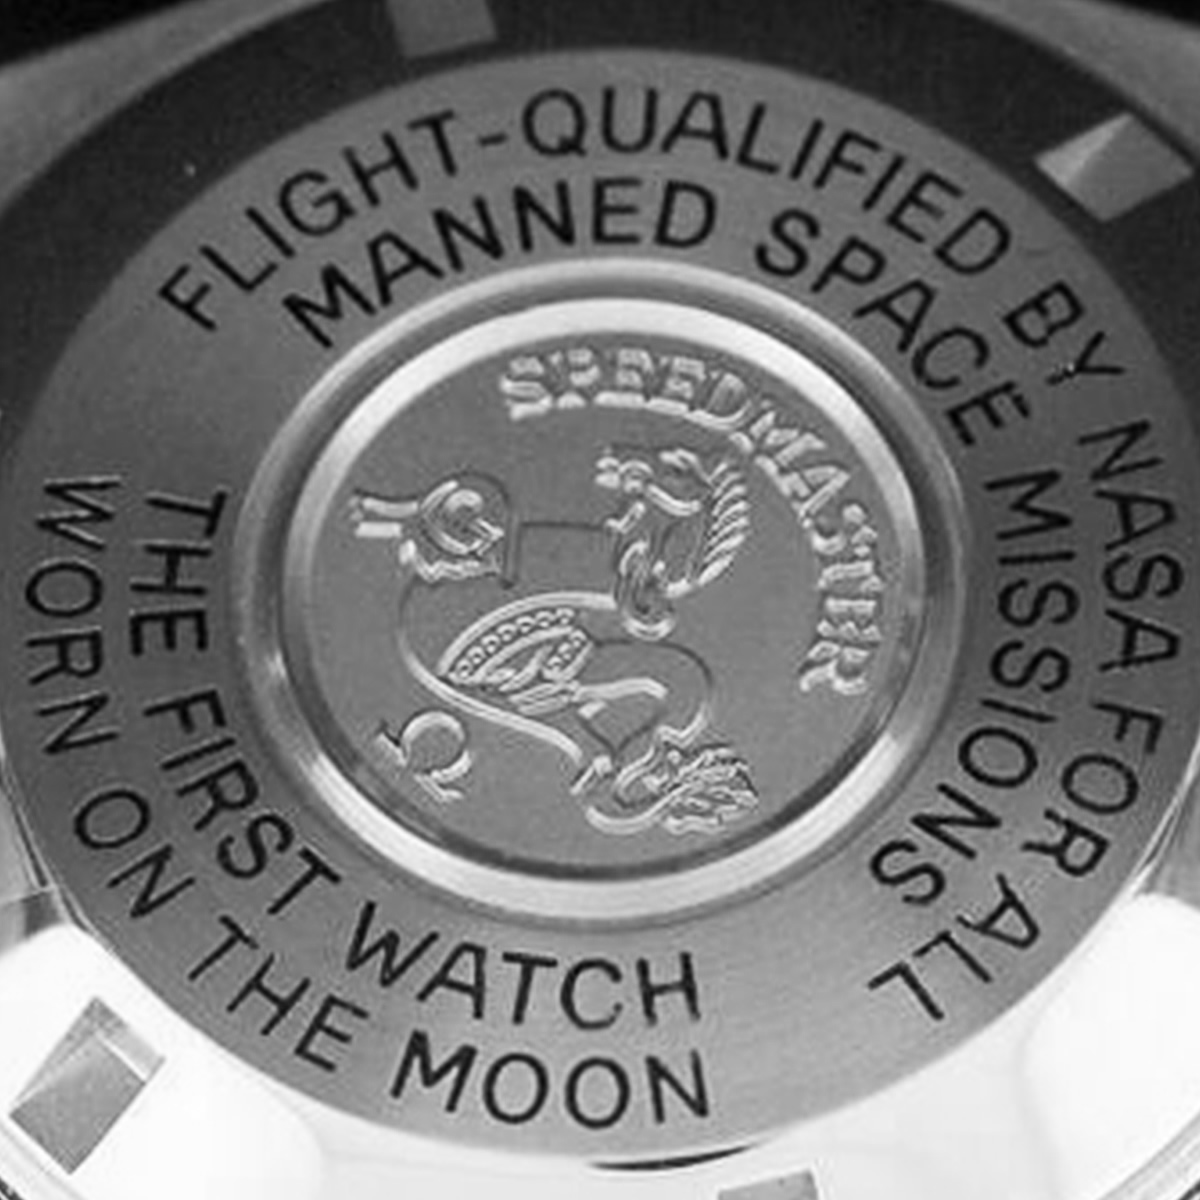 omega-speedmaster-the-first-watch-worn-on-the-moon-2-.jpg